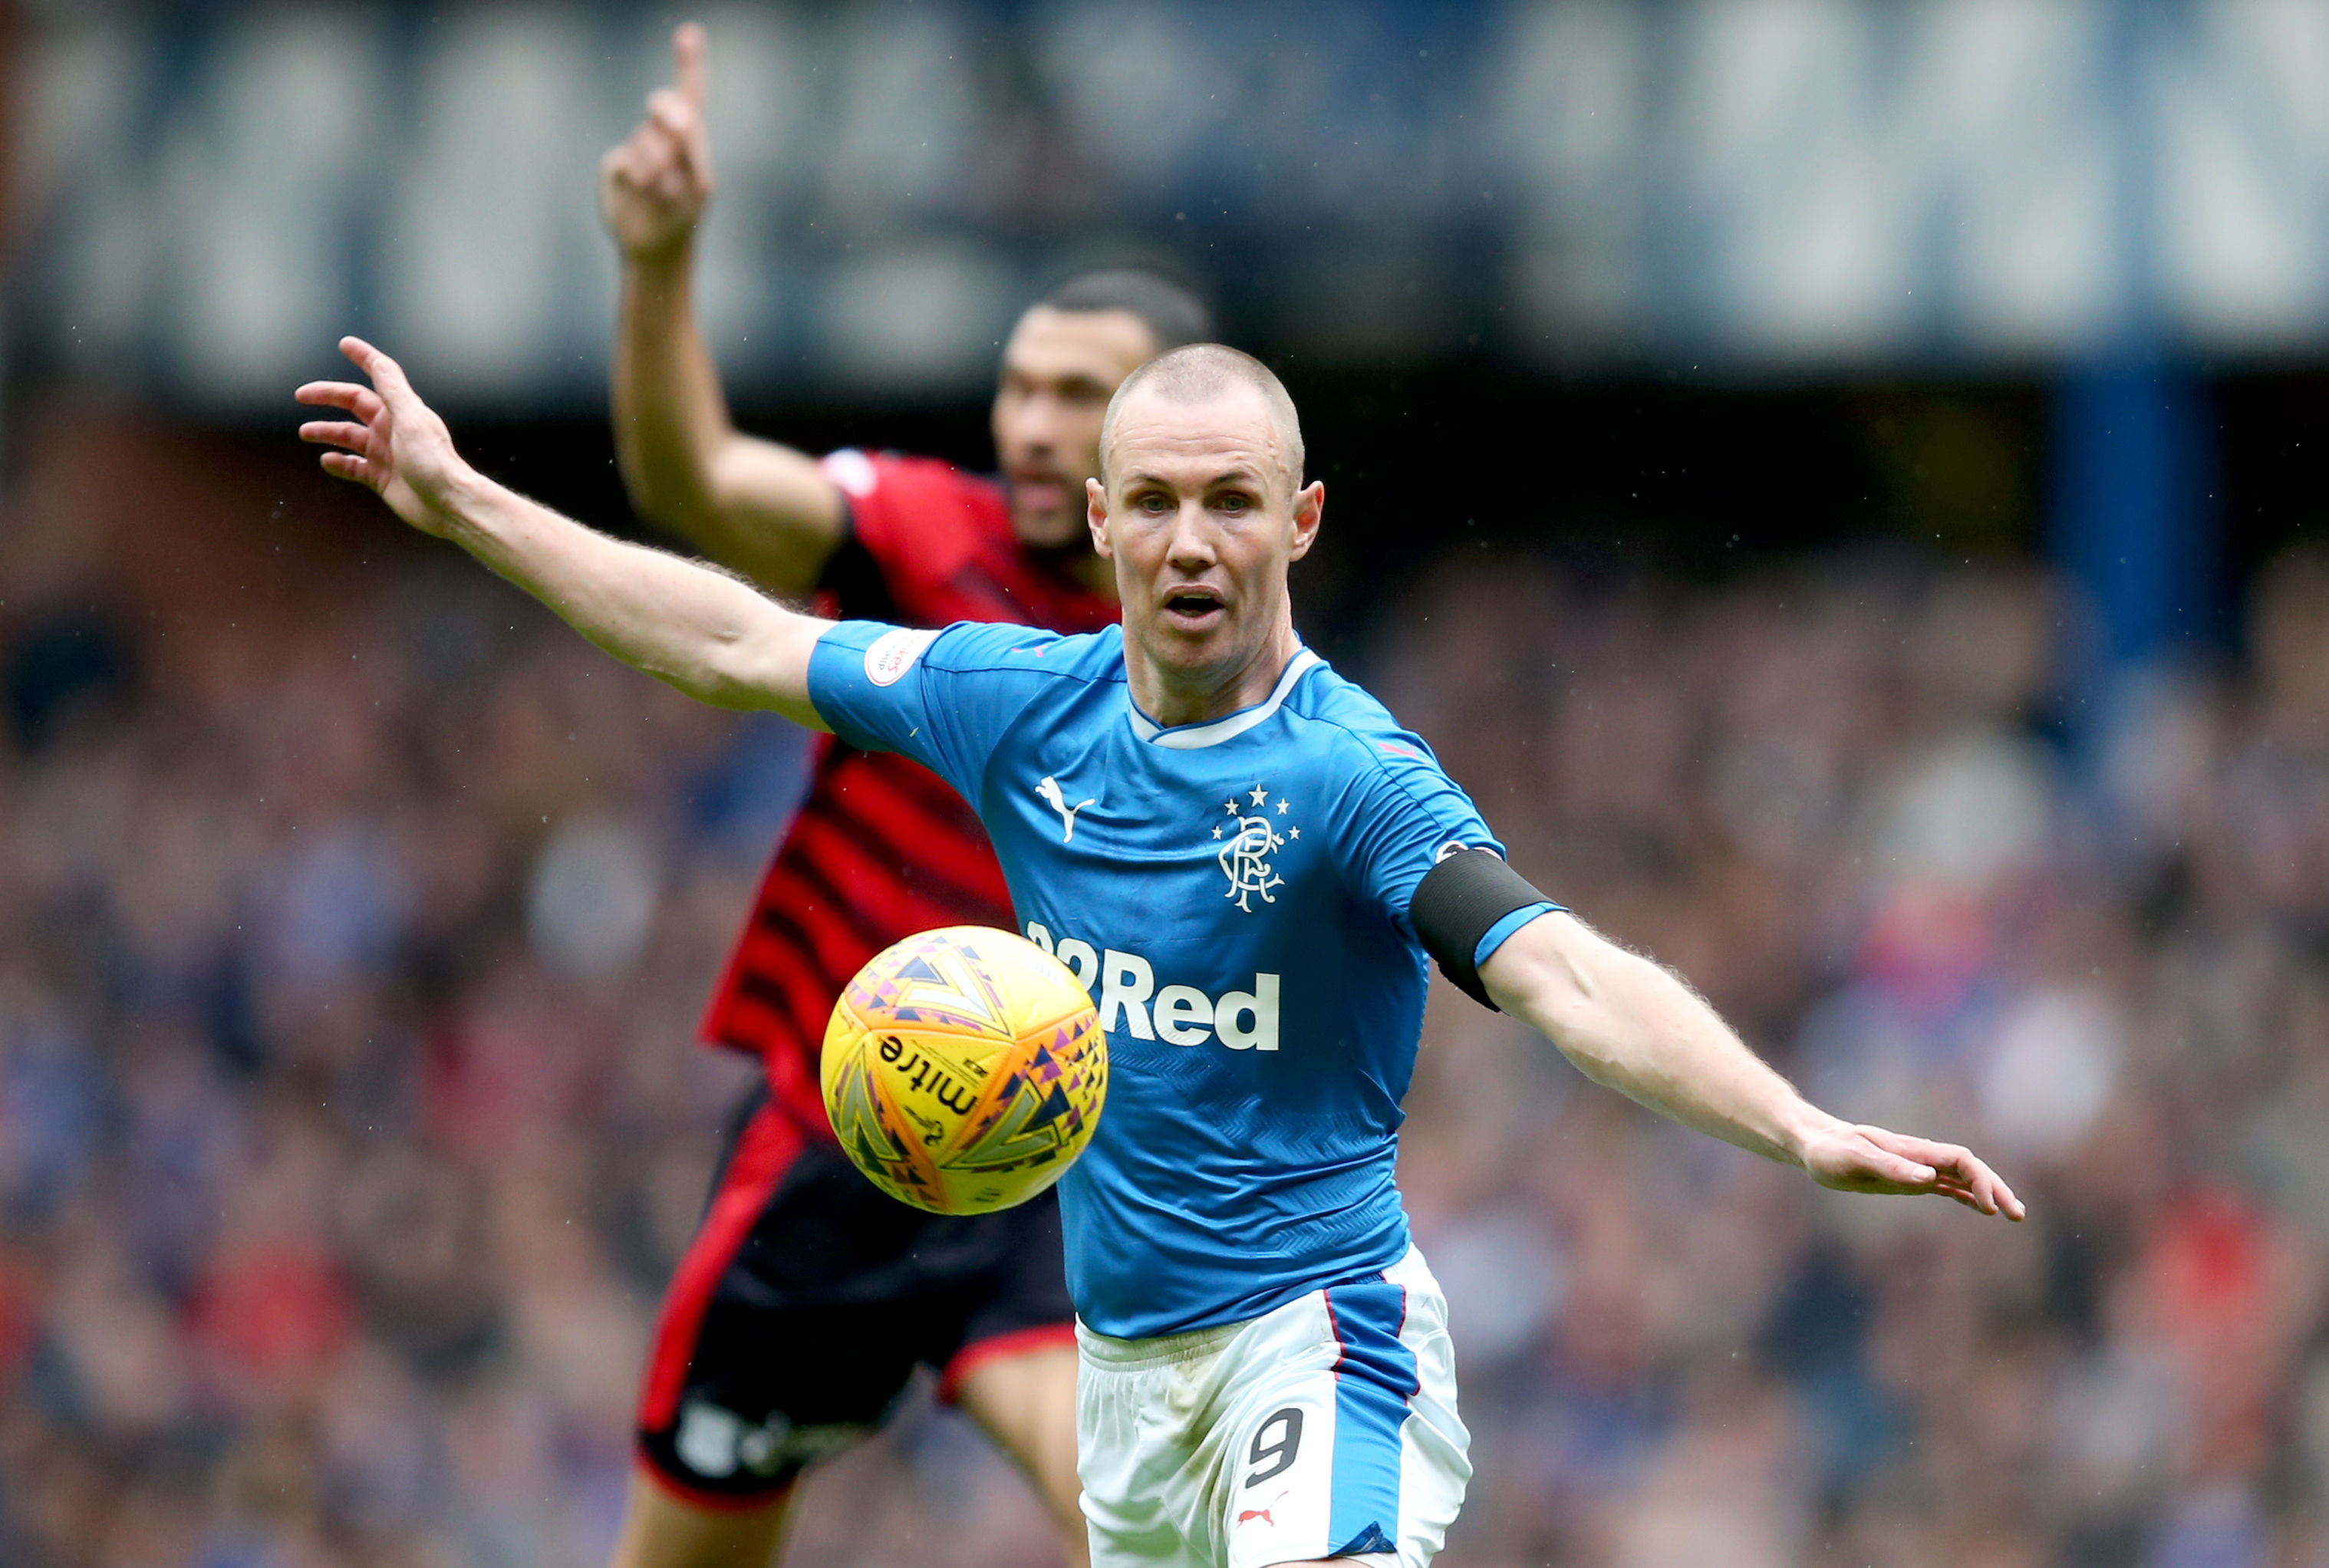 Rangers' Kenny Miller during the Ladbrokes Scottish Premiership match at the Ibrox Stadium, Glasgow. (Jane Barlow/PA Wire)